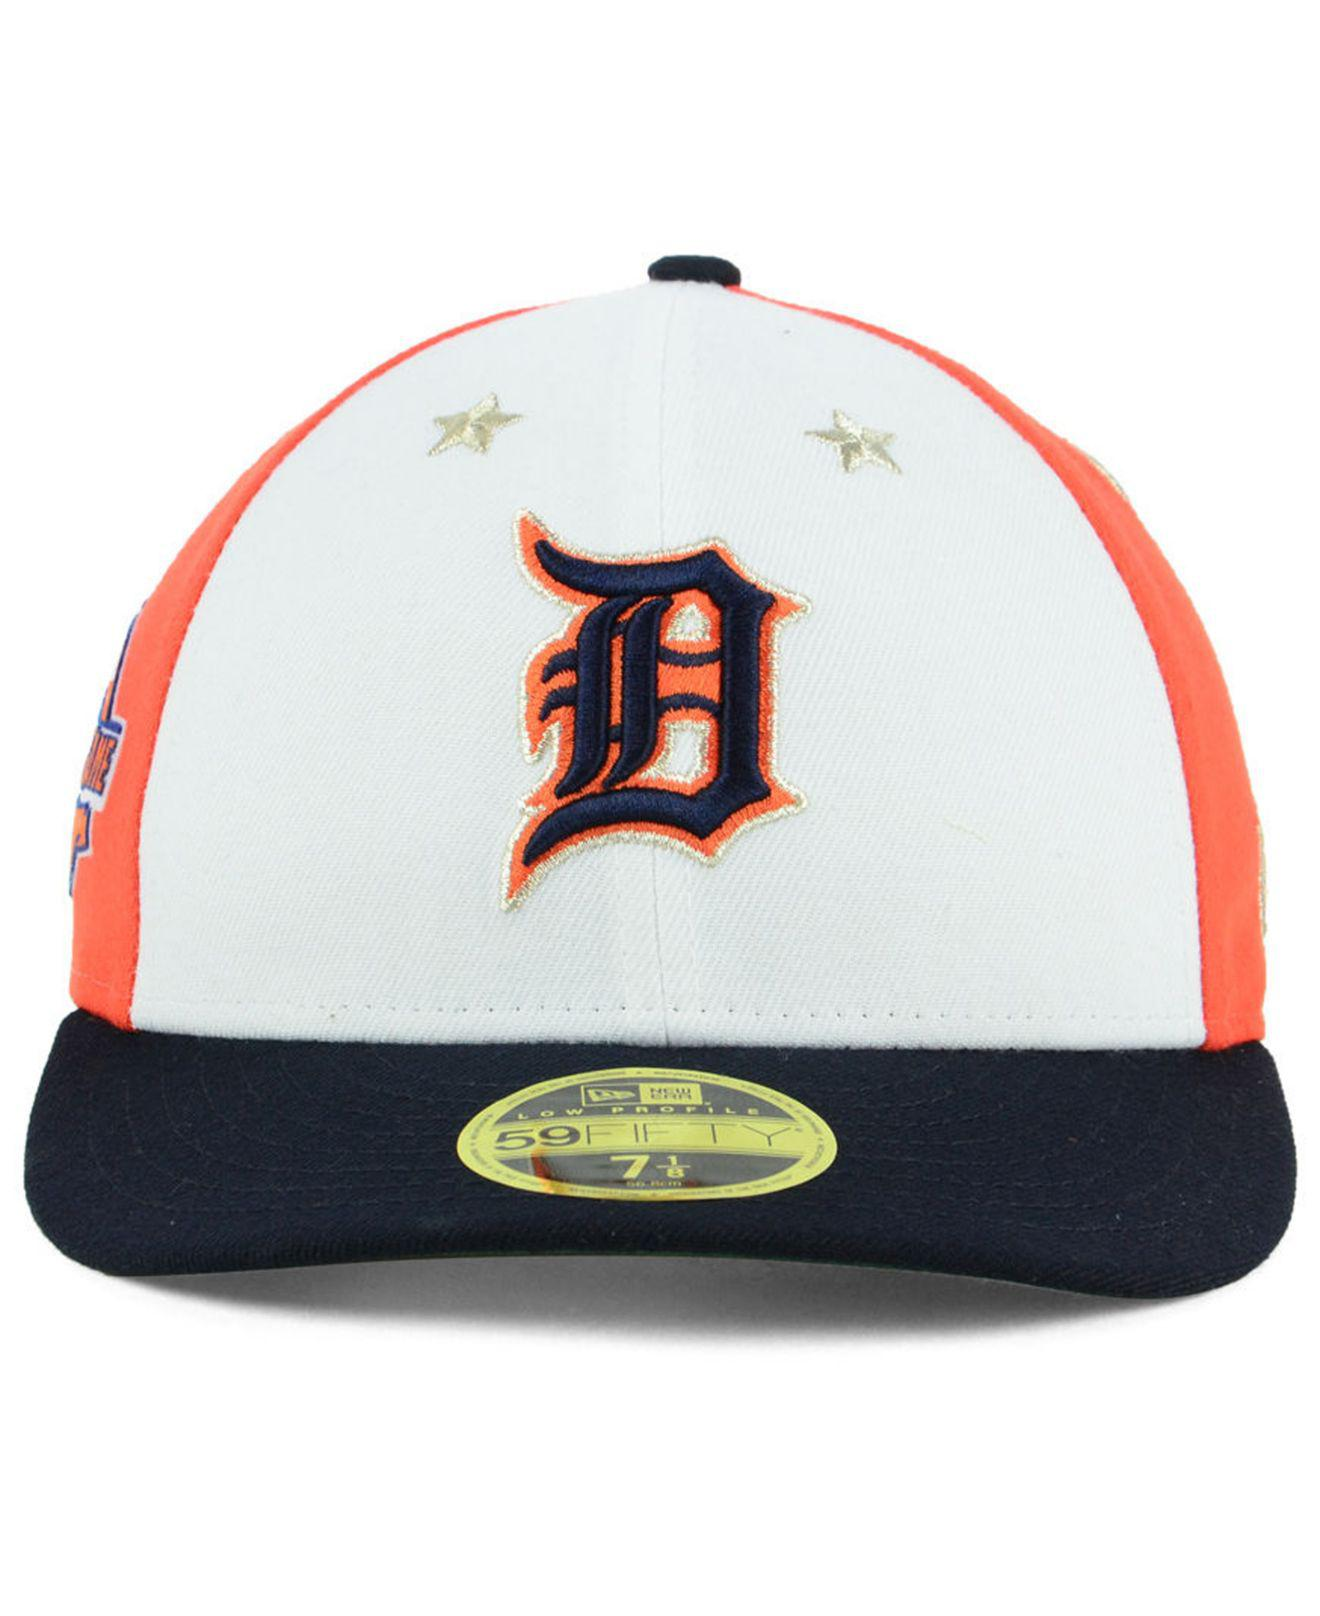 finest selection bab73 7259f czech lyst ktz detroit tigers all star game patch low profile 59fifty  fitted cap 2018 in